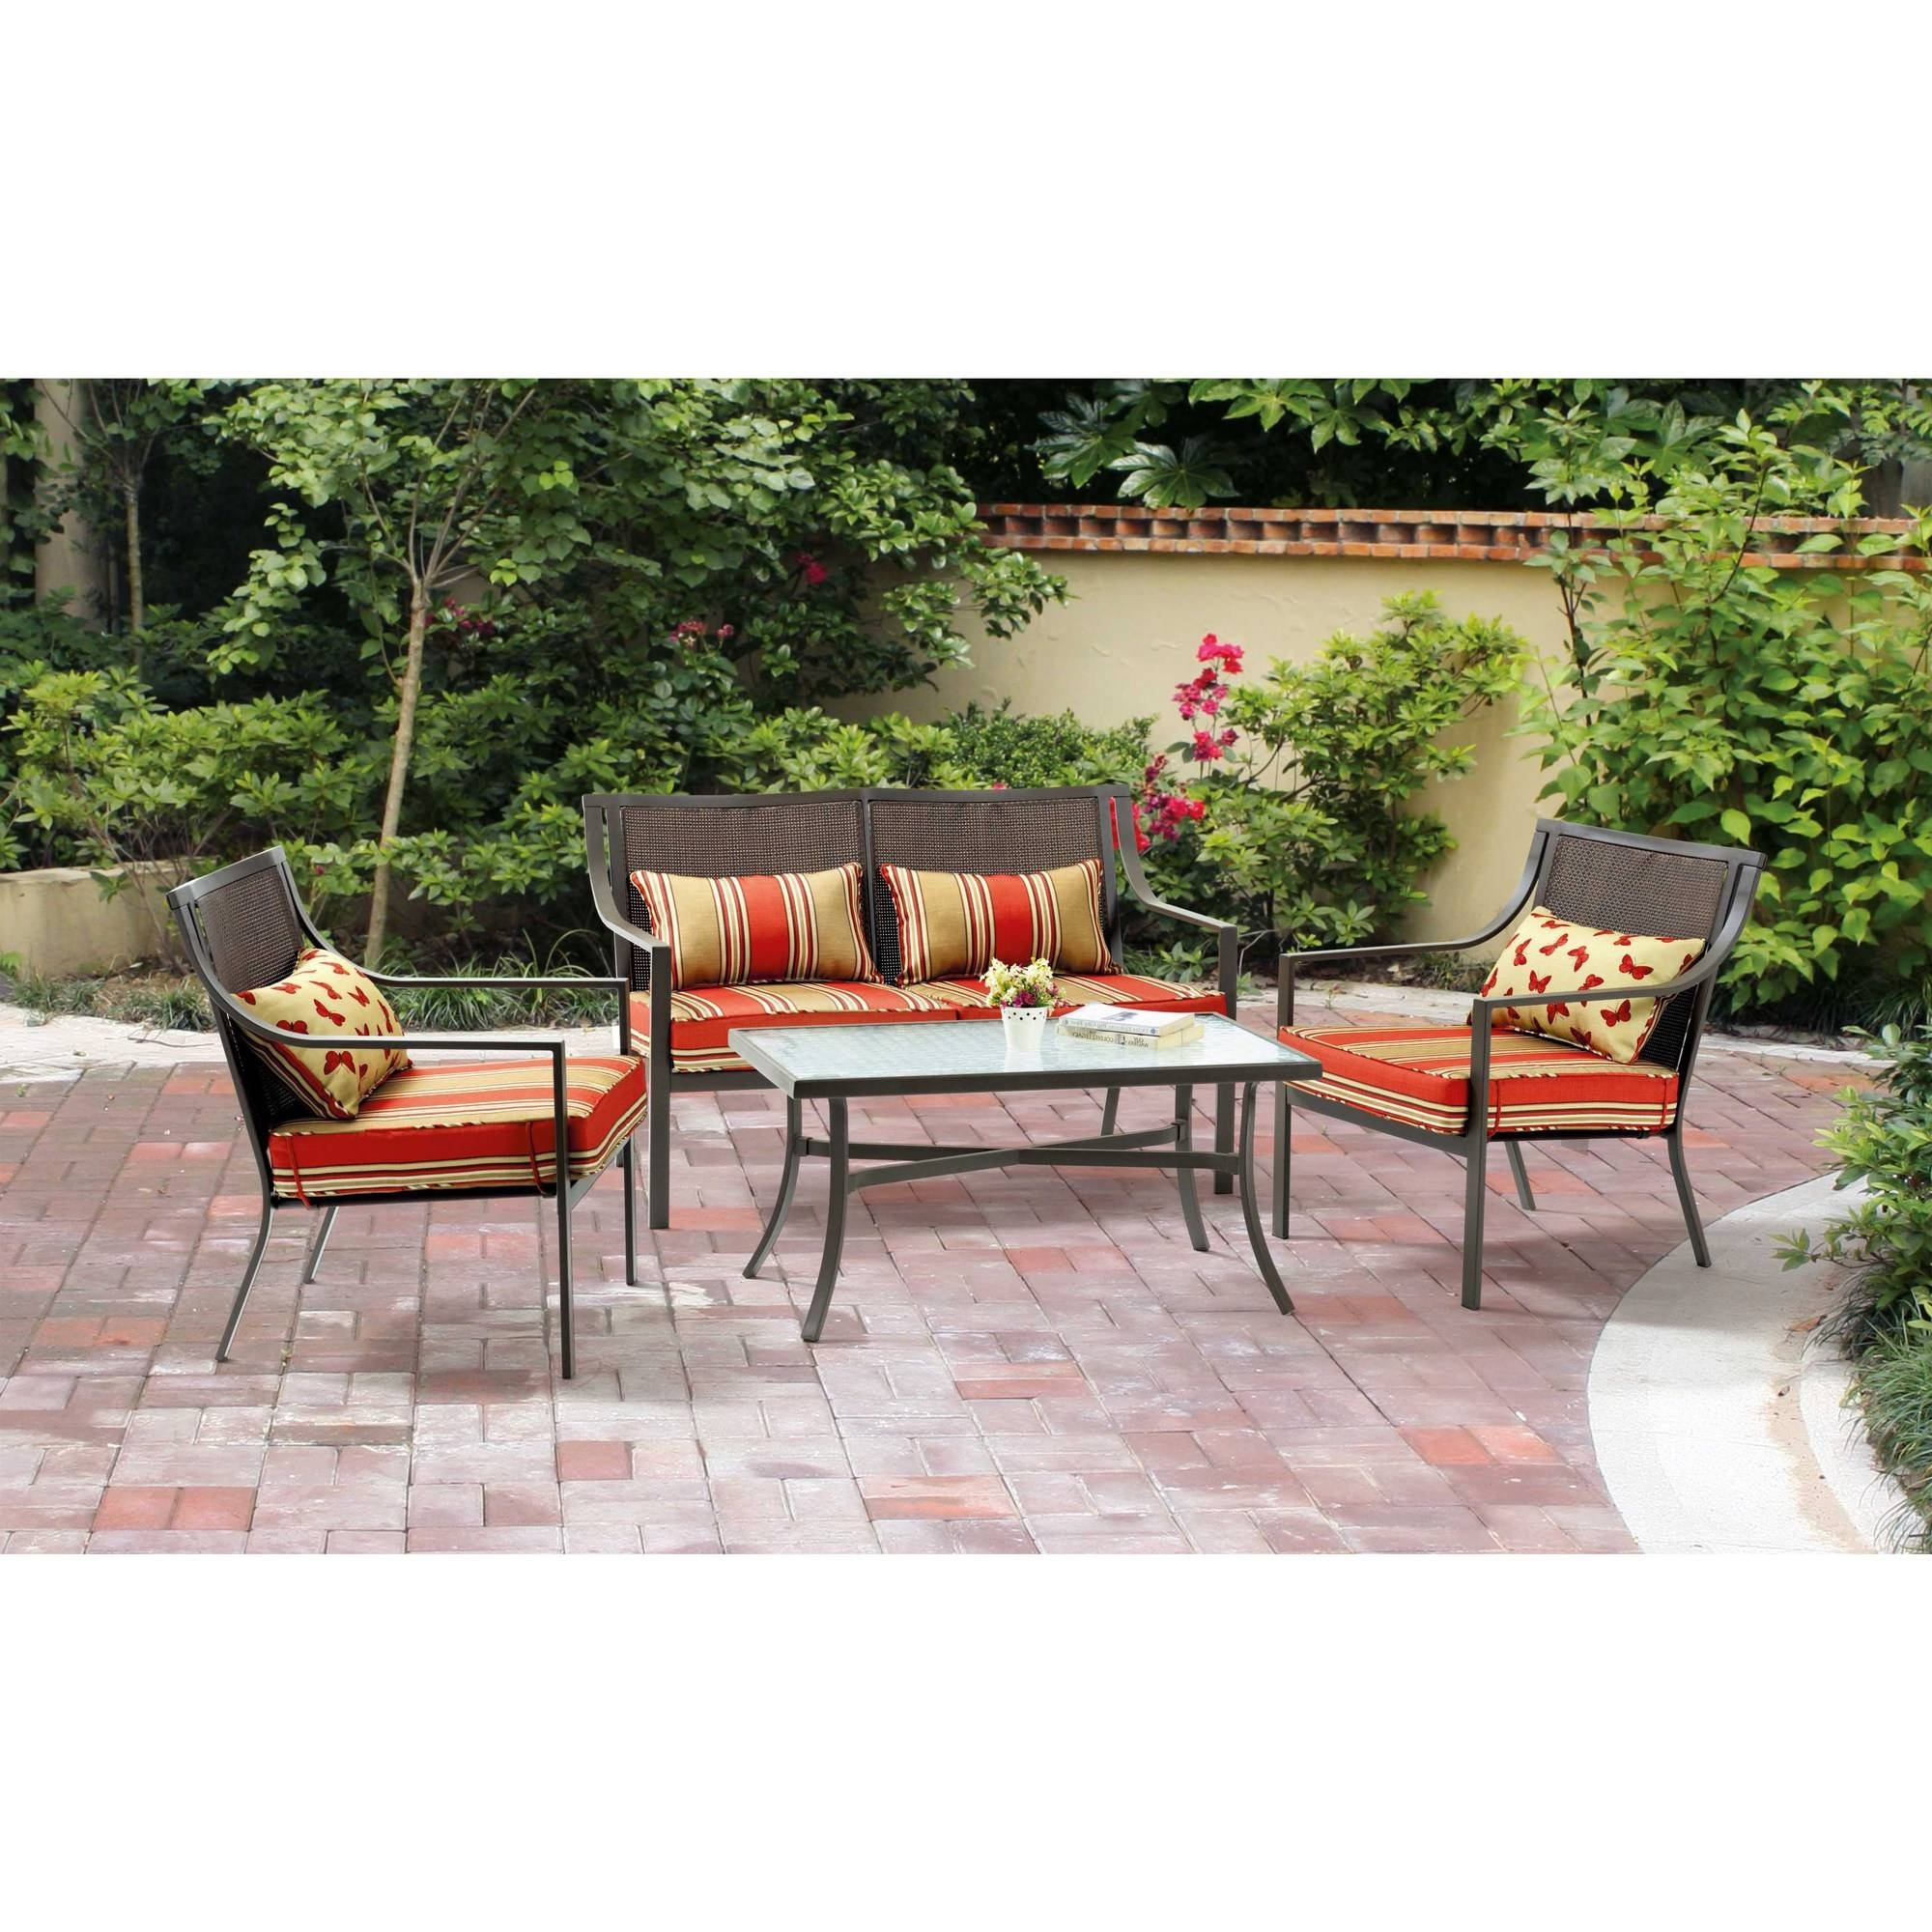 Outdoor Patio Chair Edmonton – Outdoor Designs With Regard To Well Liked Edmonton Patio Conversation Sets (View 8 of 15)